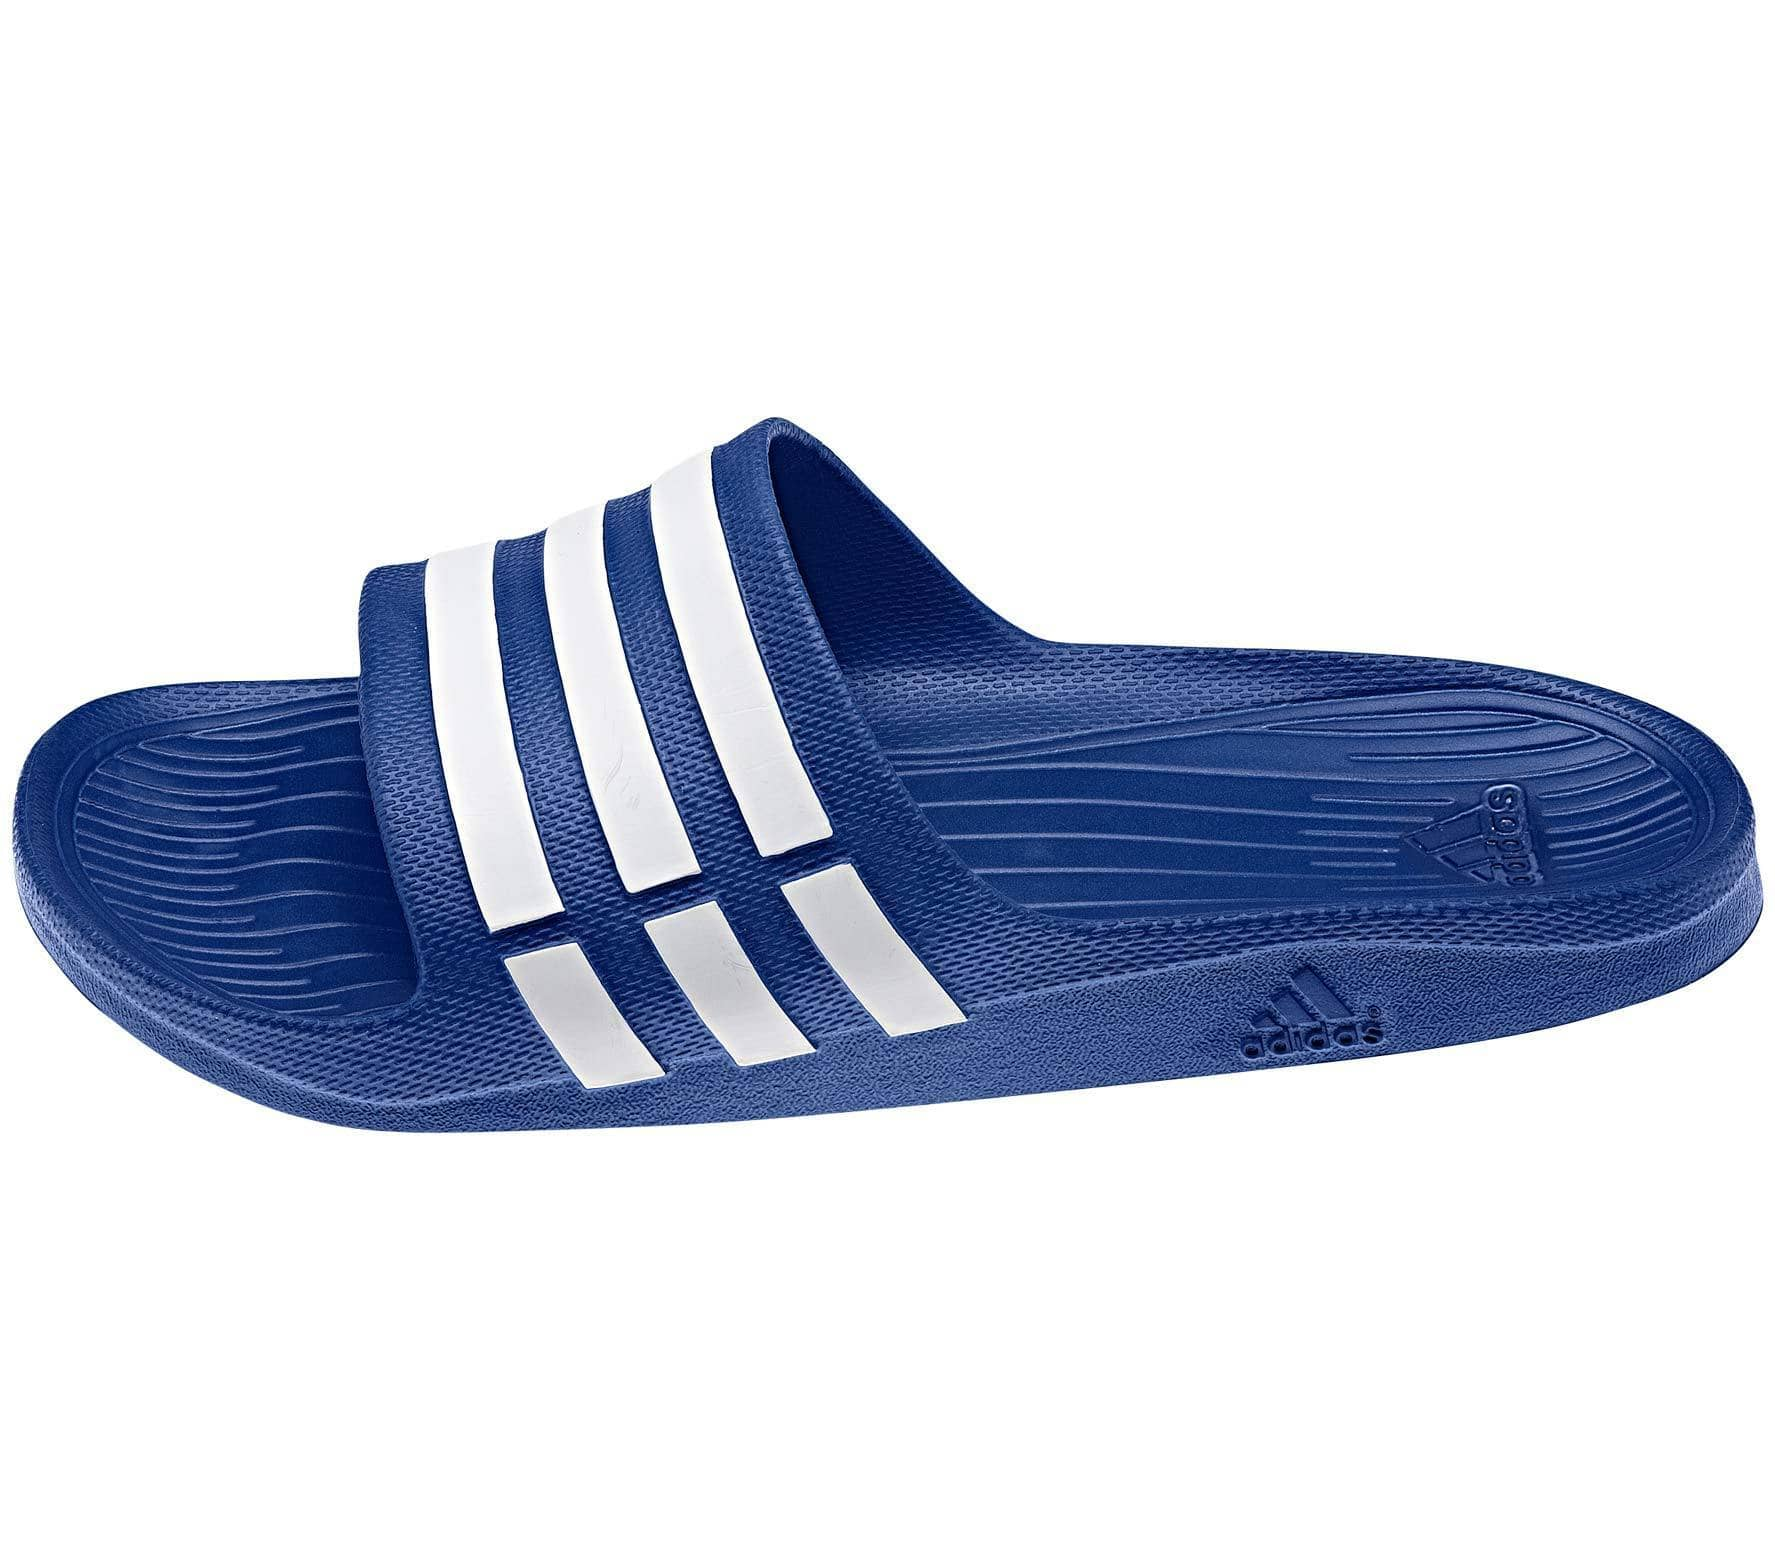 cheaper 5b1ad 3eea4 Adidas - Duramo Slide men s slides (blue white)